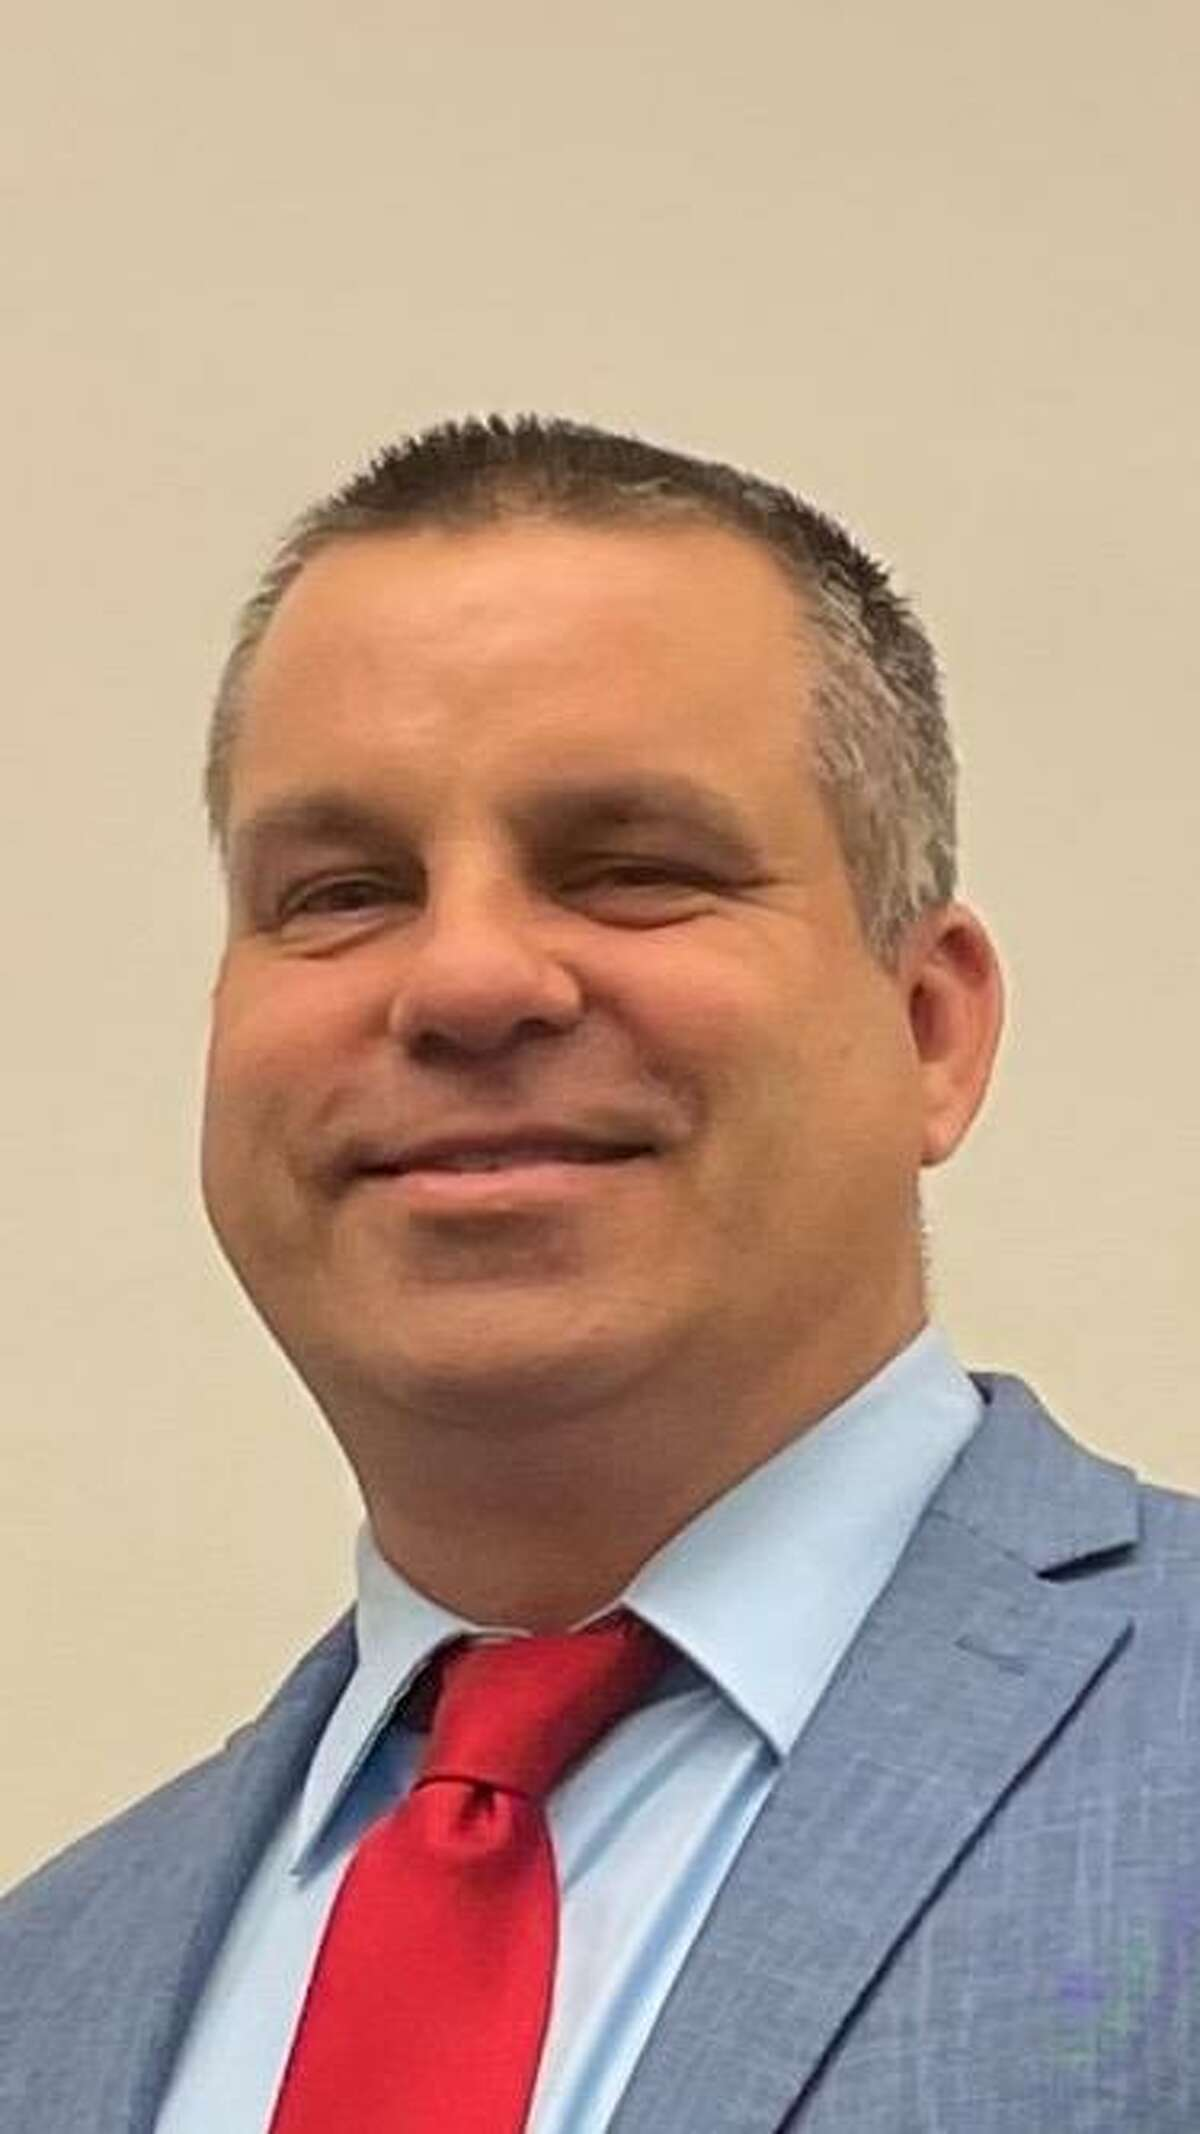 New Haven Republican Town Chairman John Carlson will be New Haven's first Republican mayoral candidate since 2007.